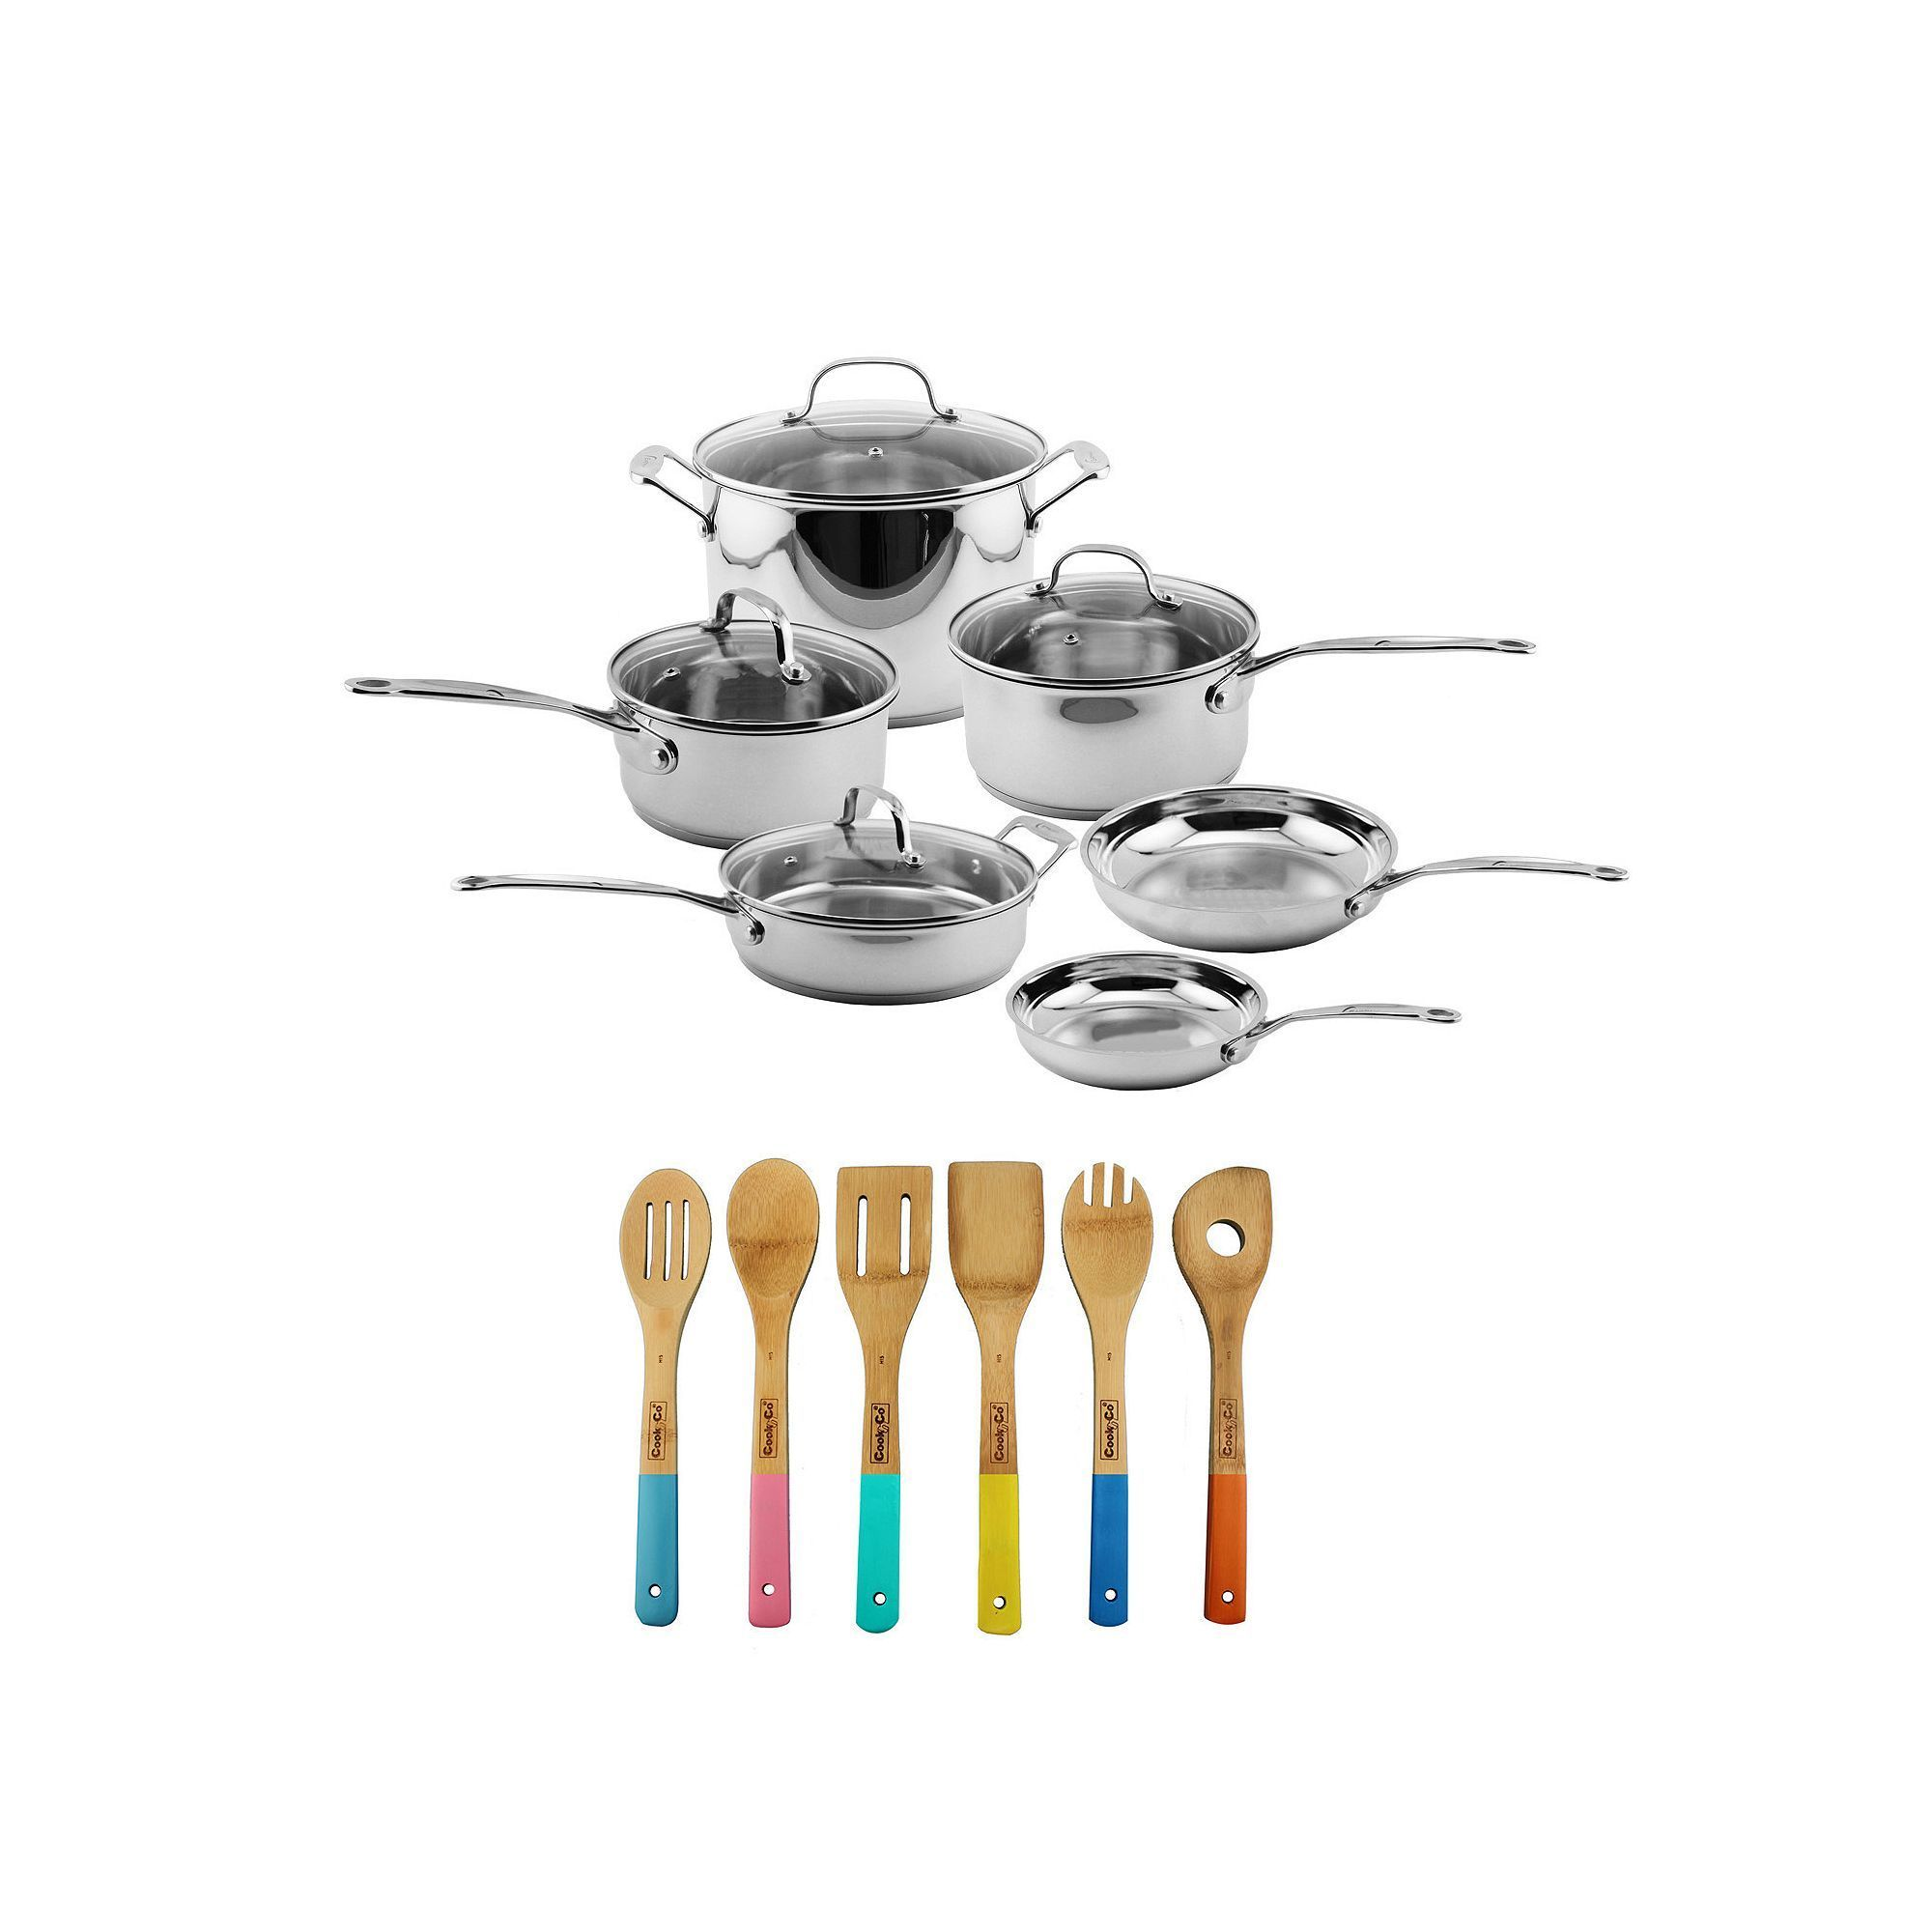 BergHOFF EarthChef 16-pc. Premium Copper Clad Cookware Set, Brown